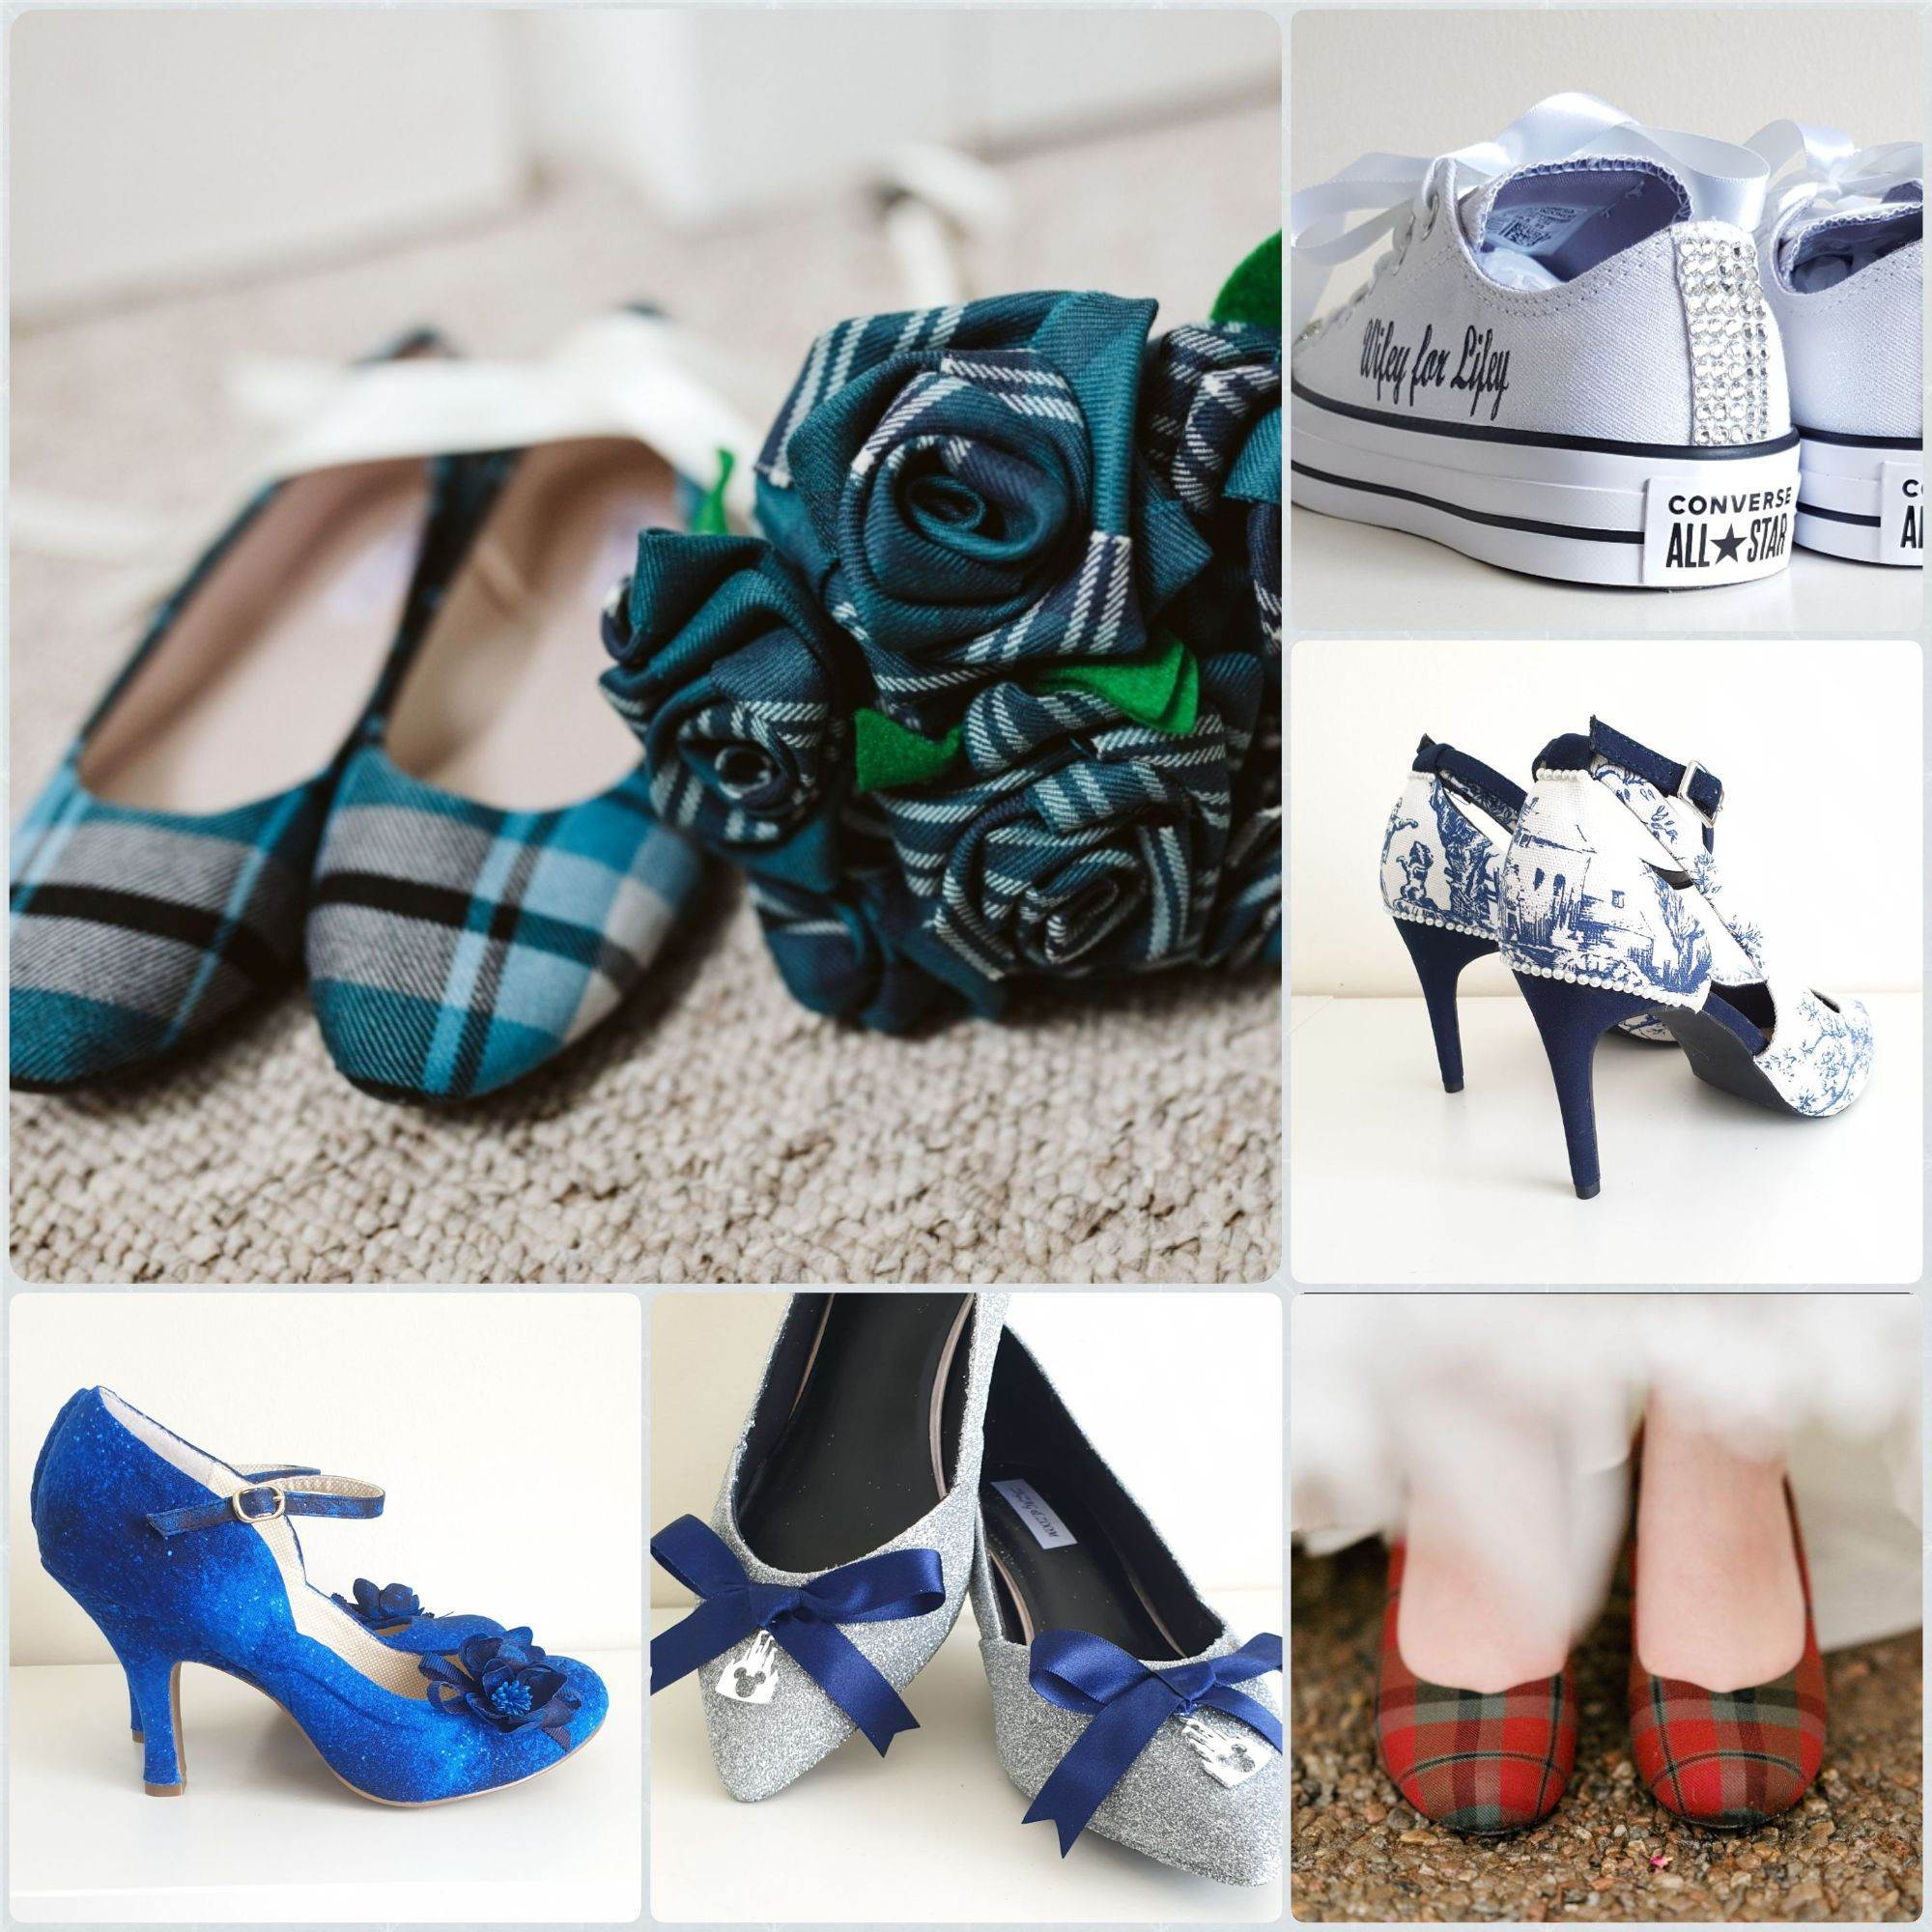 Custom Wedding shoes, lace, wedding shoes, tartan shoes, mackenzie tartan shoes, lego heels